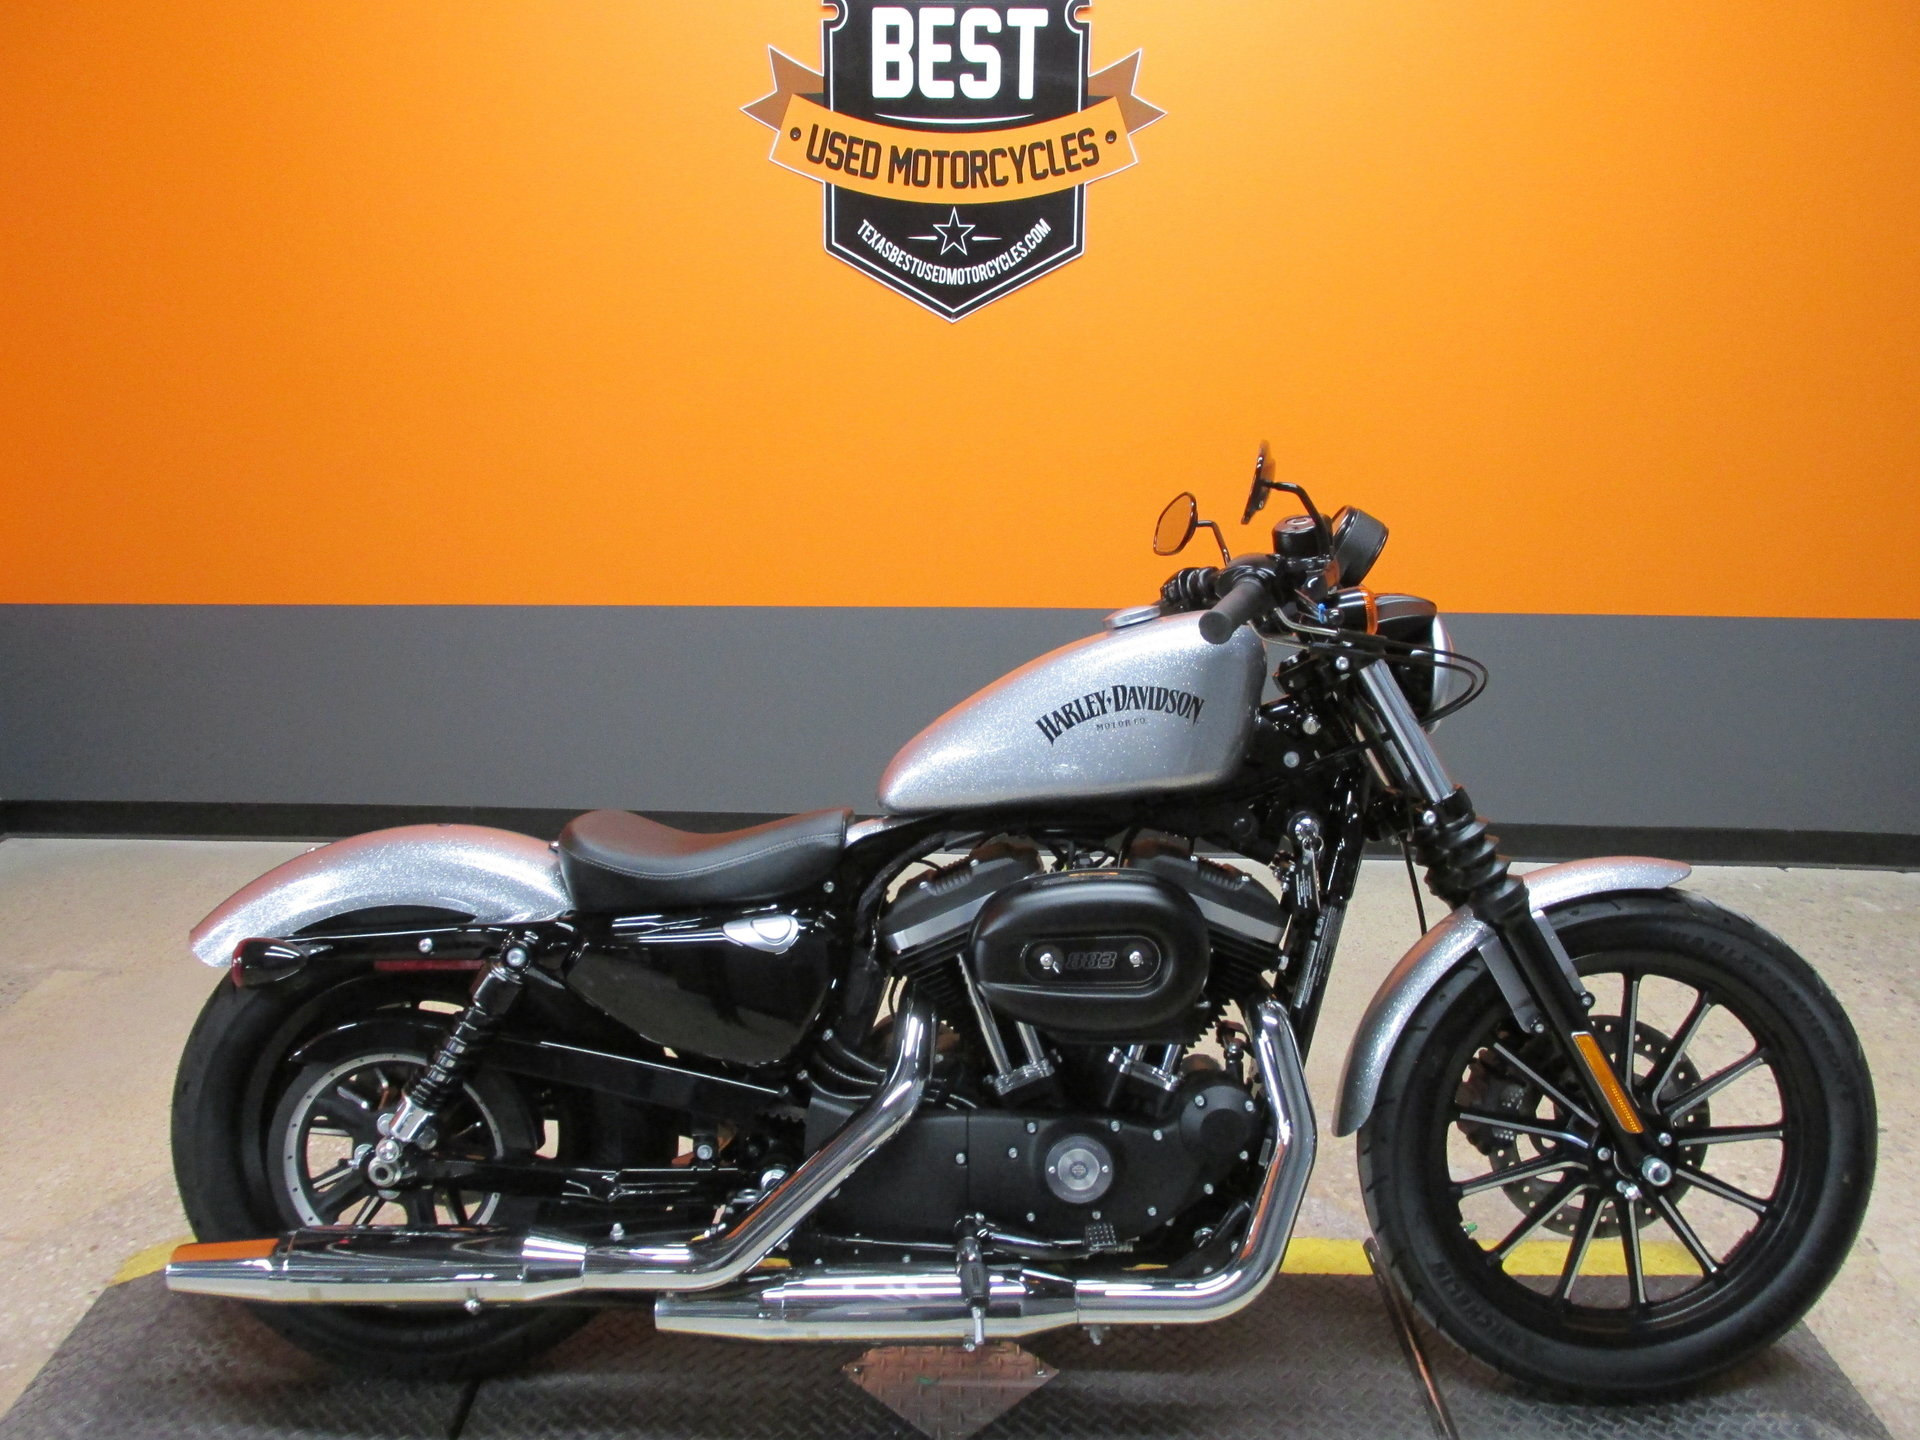 2015 harley davidson sportster 883 iron xl883n for sale. Black Bedroom Furniture Sets. Home Design Ideas